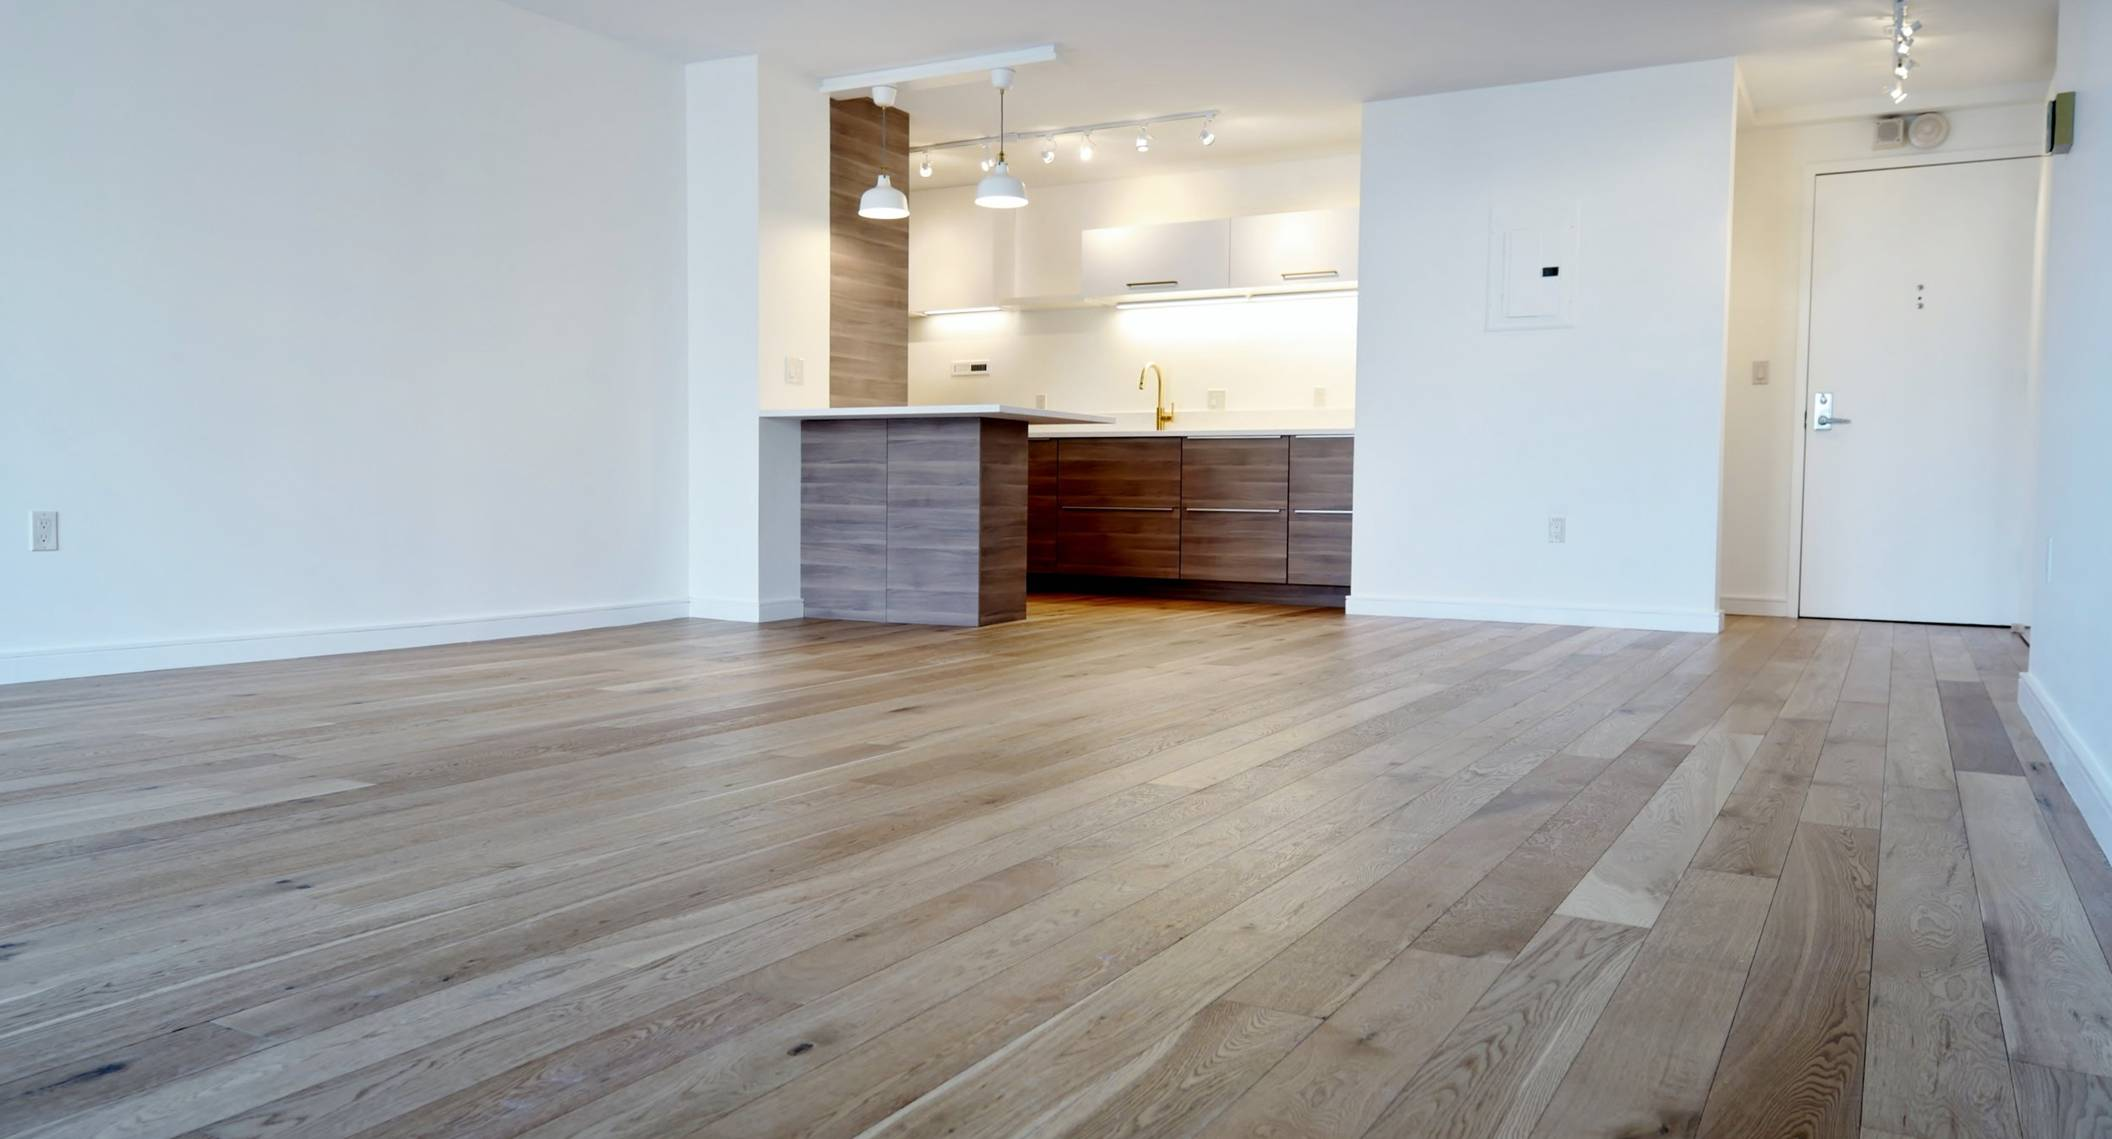 interior design showcasing wooden flooring and cabinets